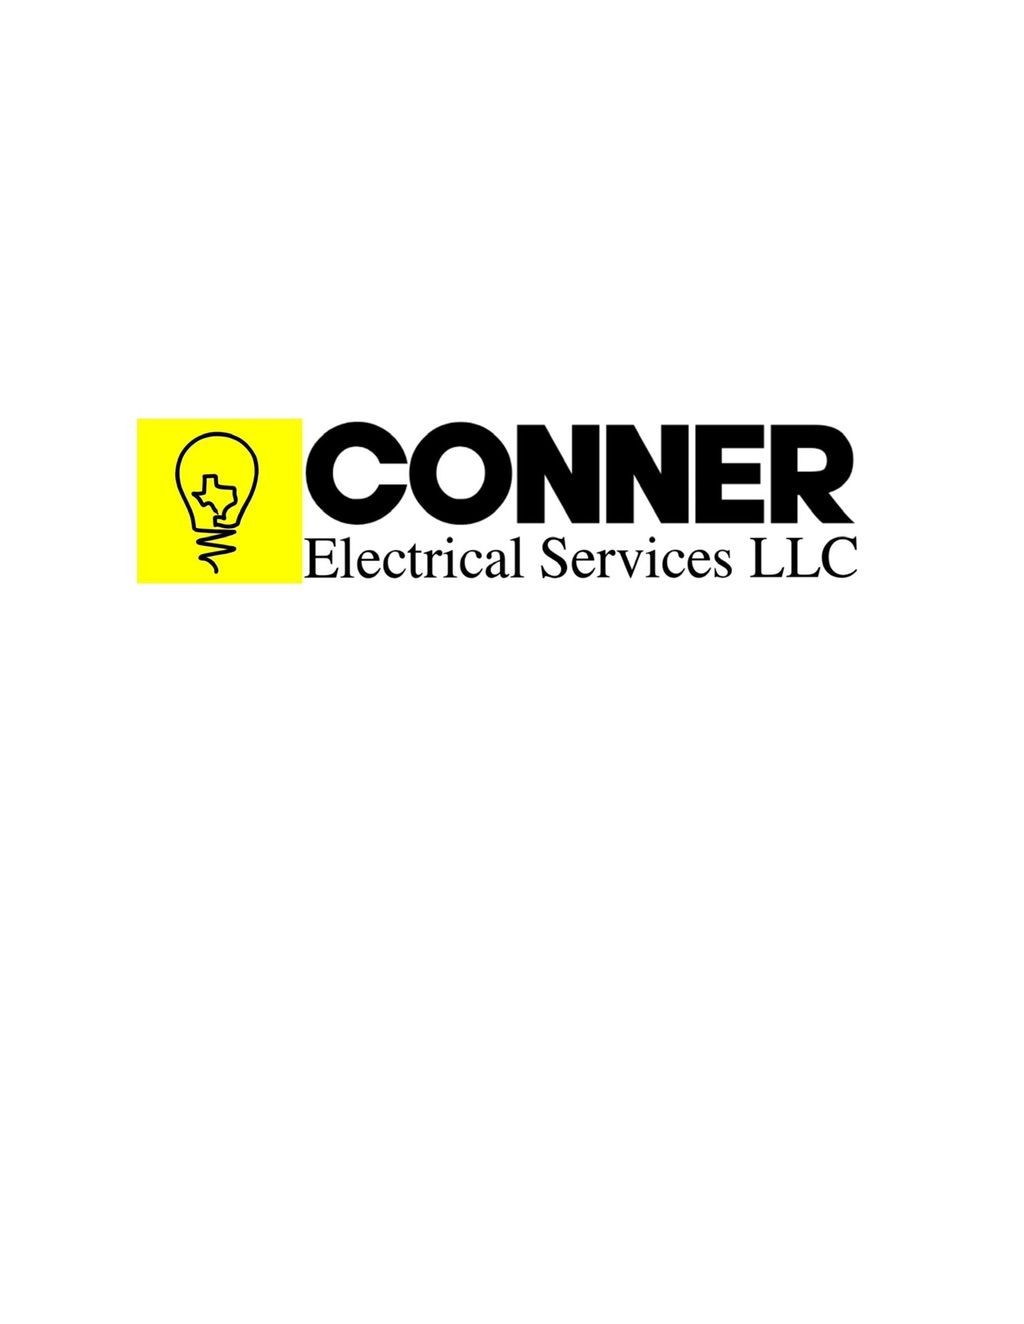 Conner Electrical Services